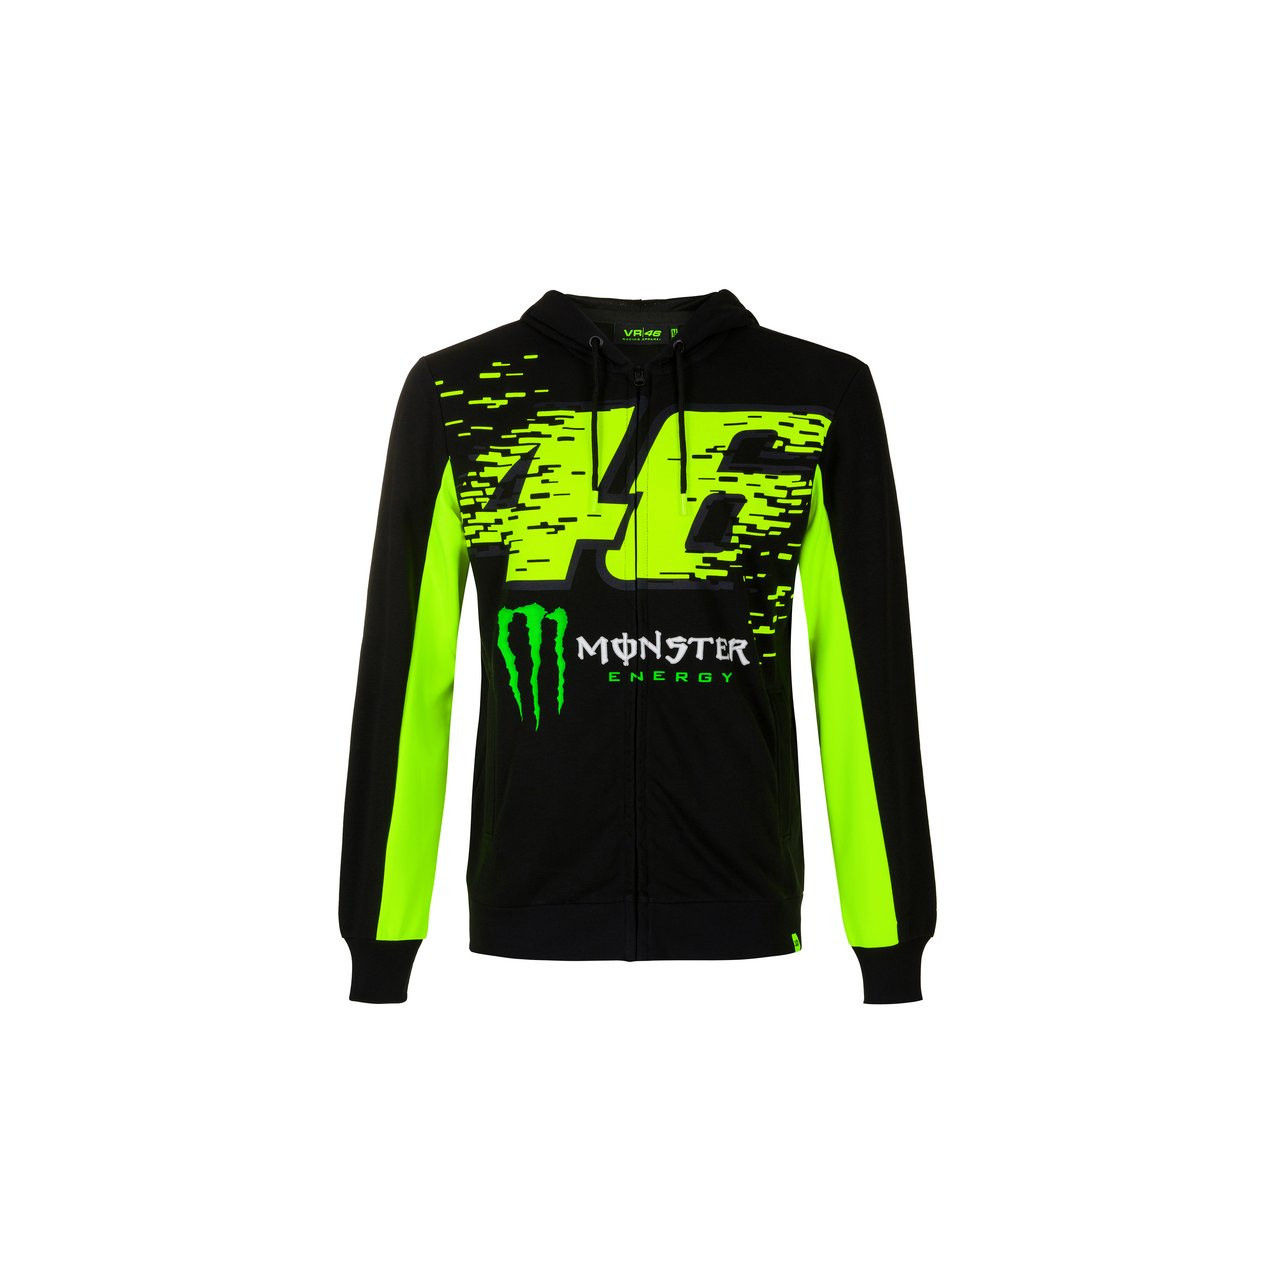 VALENTINO ROSSI Sweat homme Monster VR46 2020 Monza